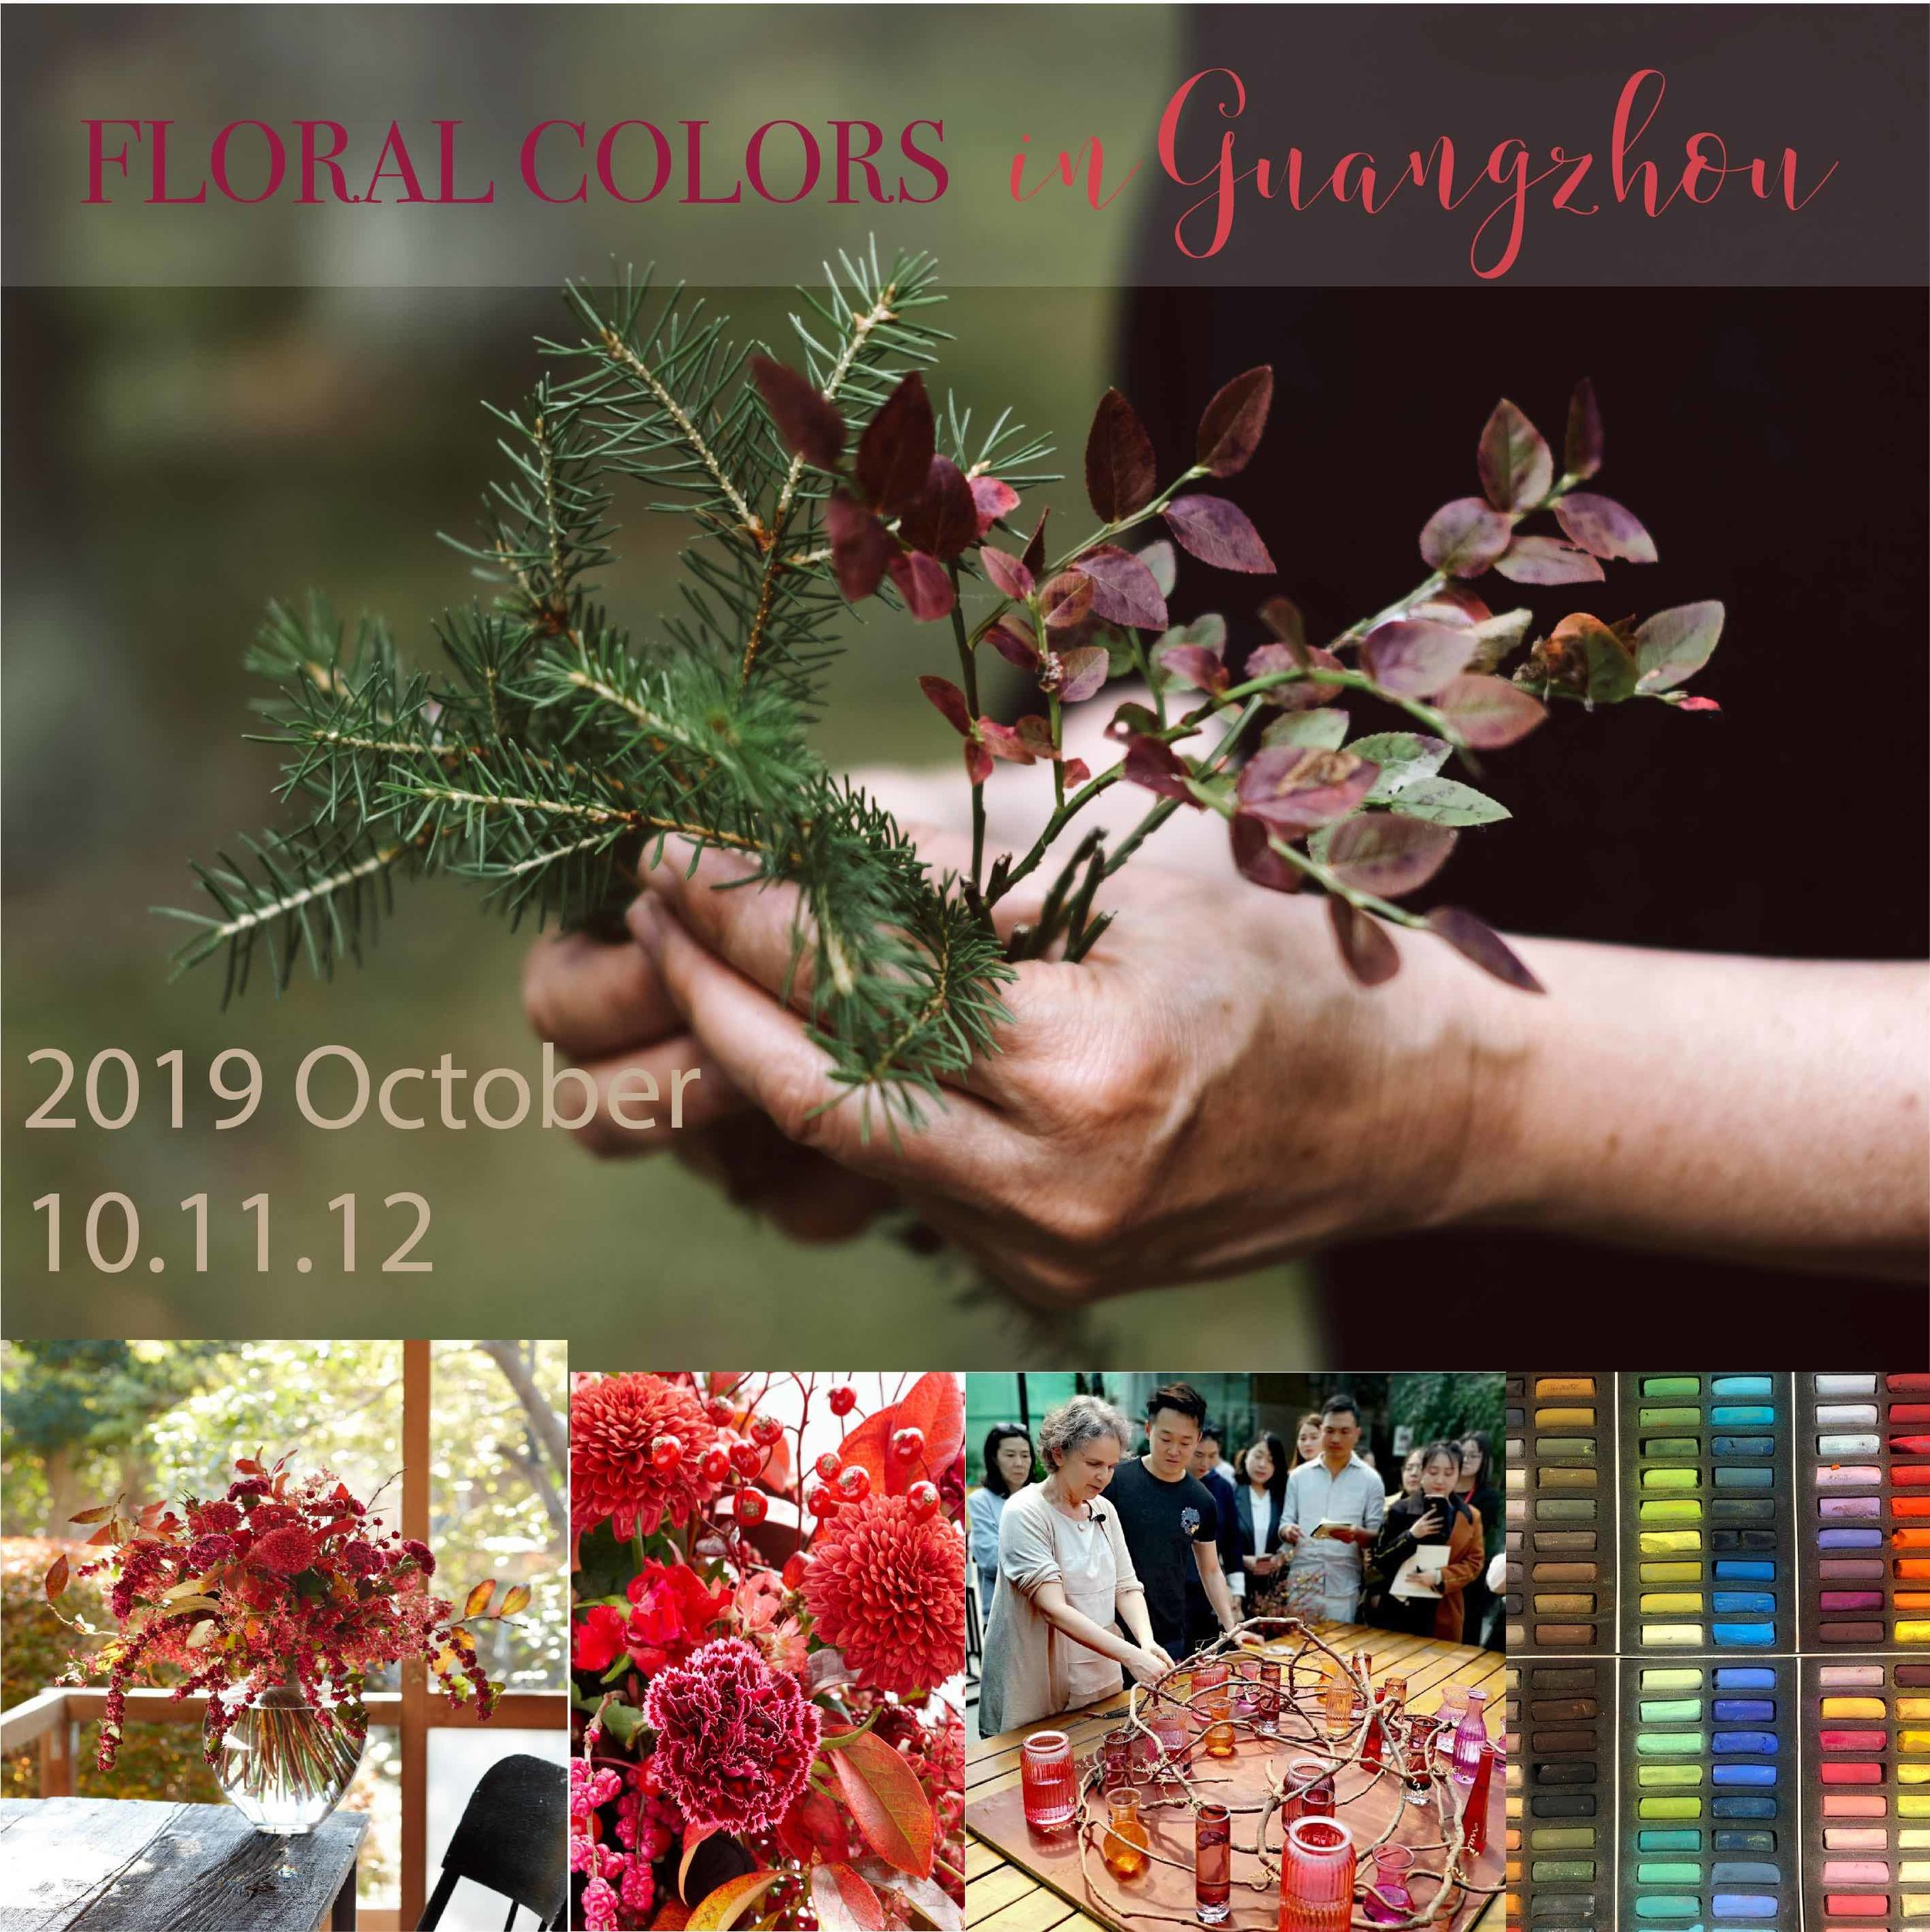 11th of October in Guangzhou